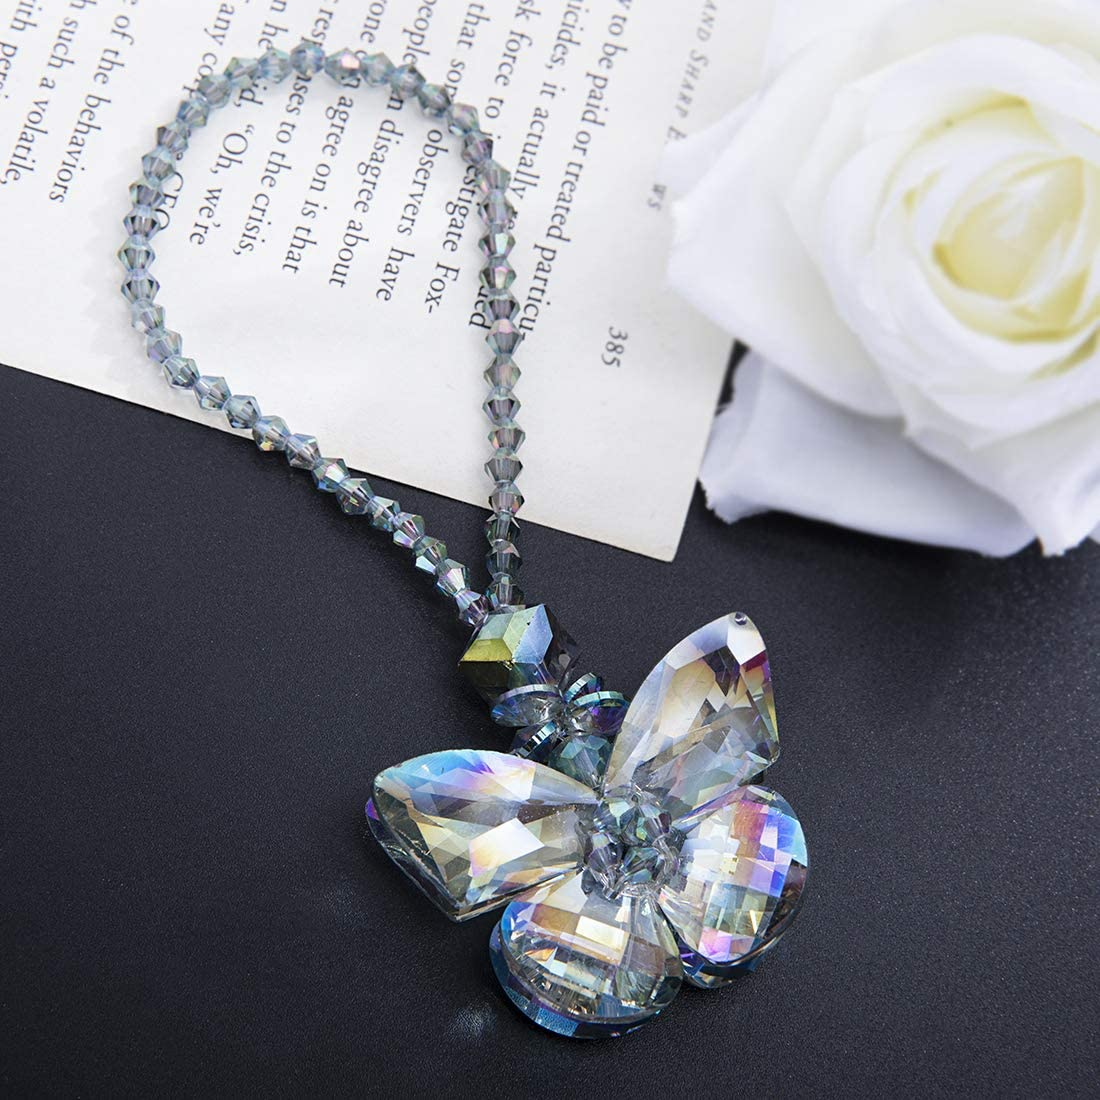 H&D Crystal Glass Butterfly Car Key Charm Mirror Hanging Ornaments Gift (Butterfly-1)